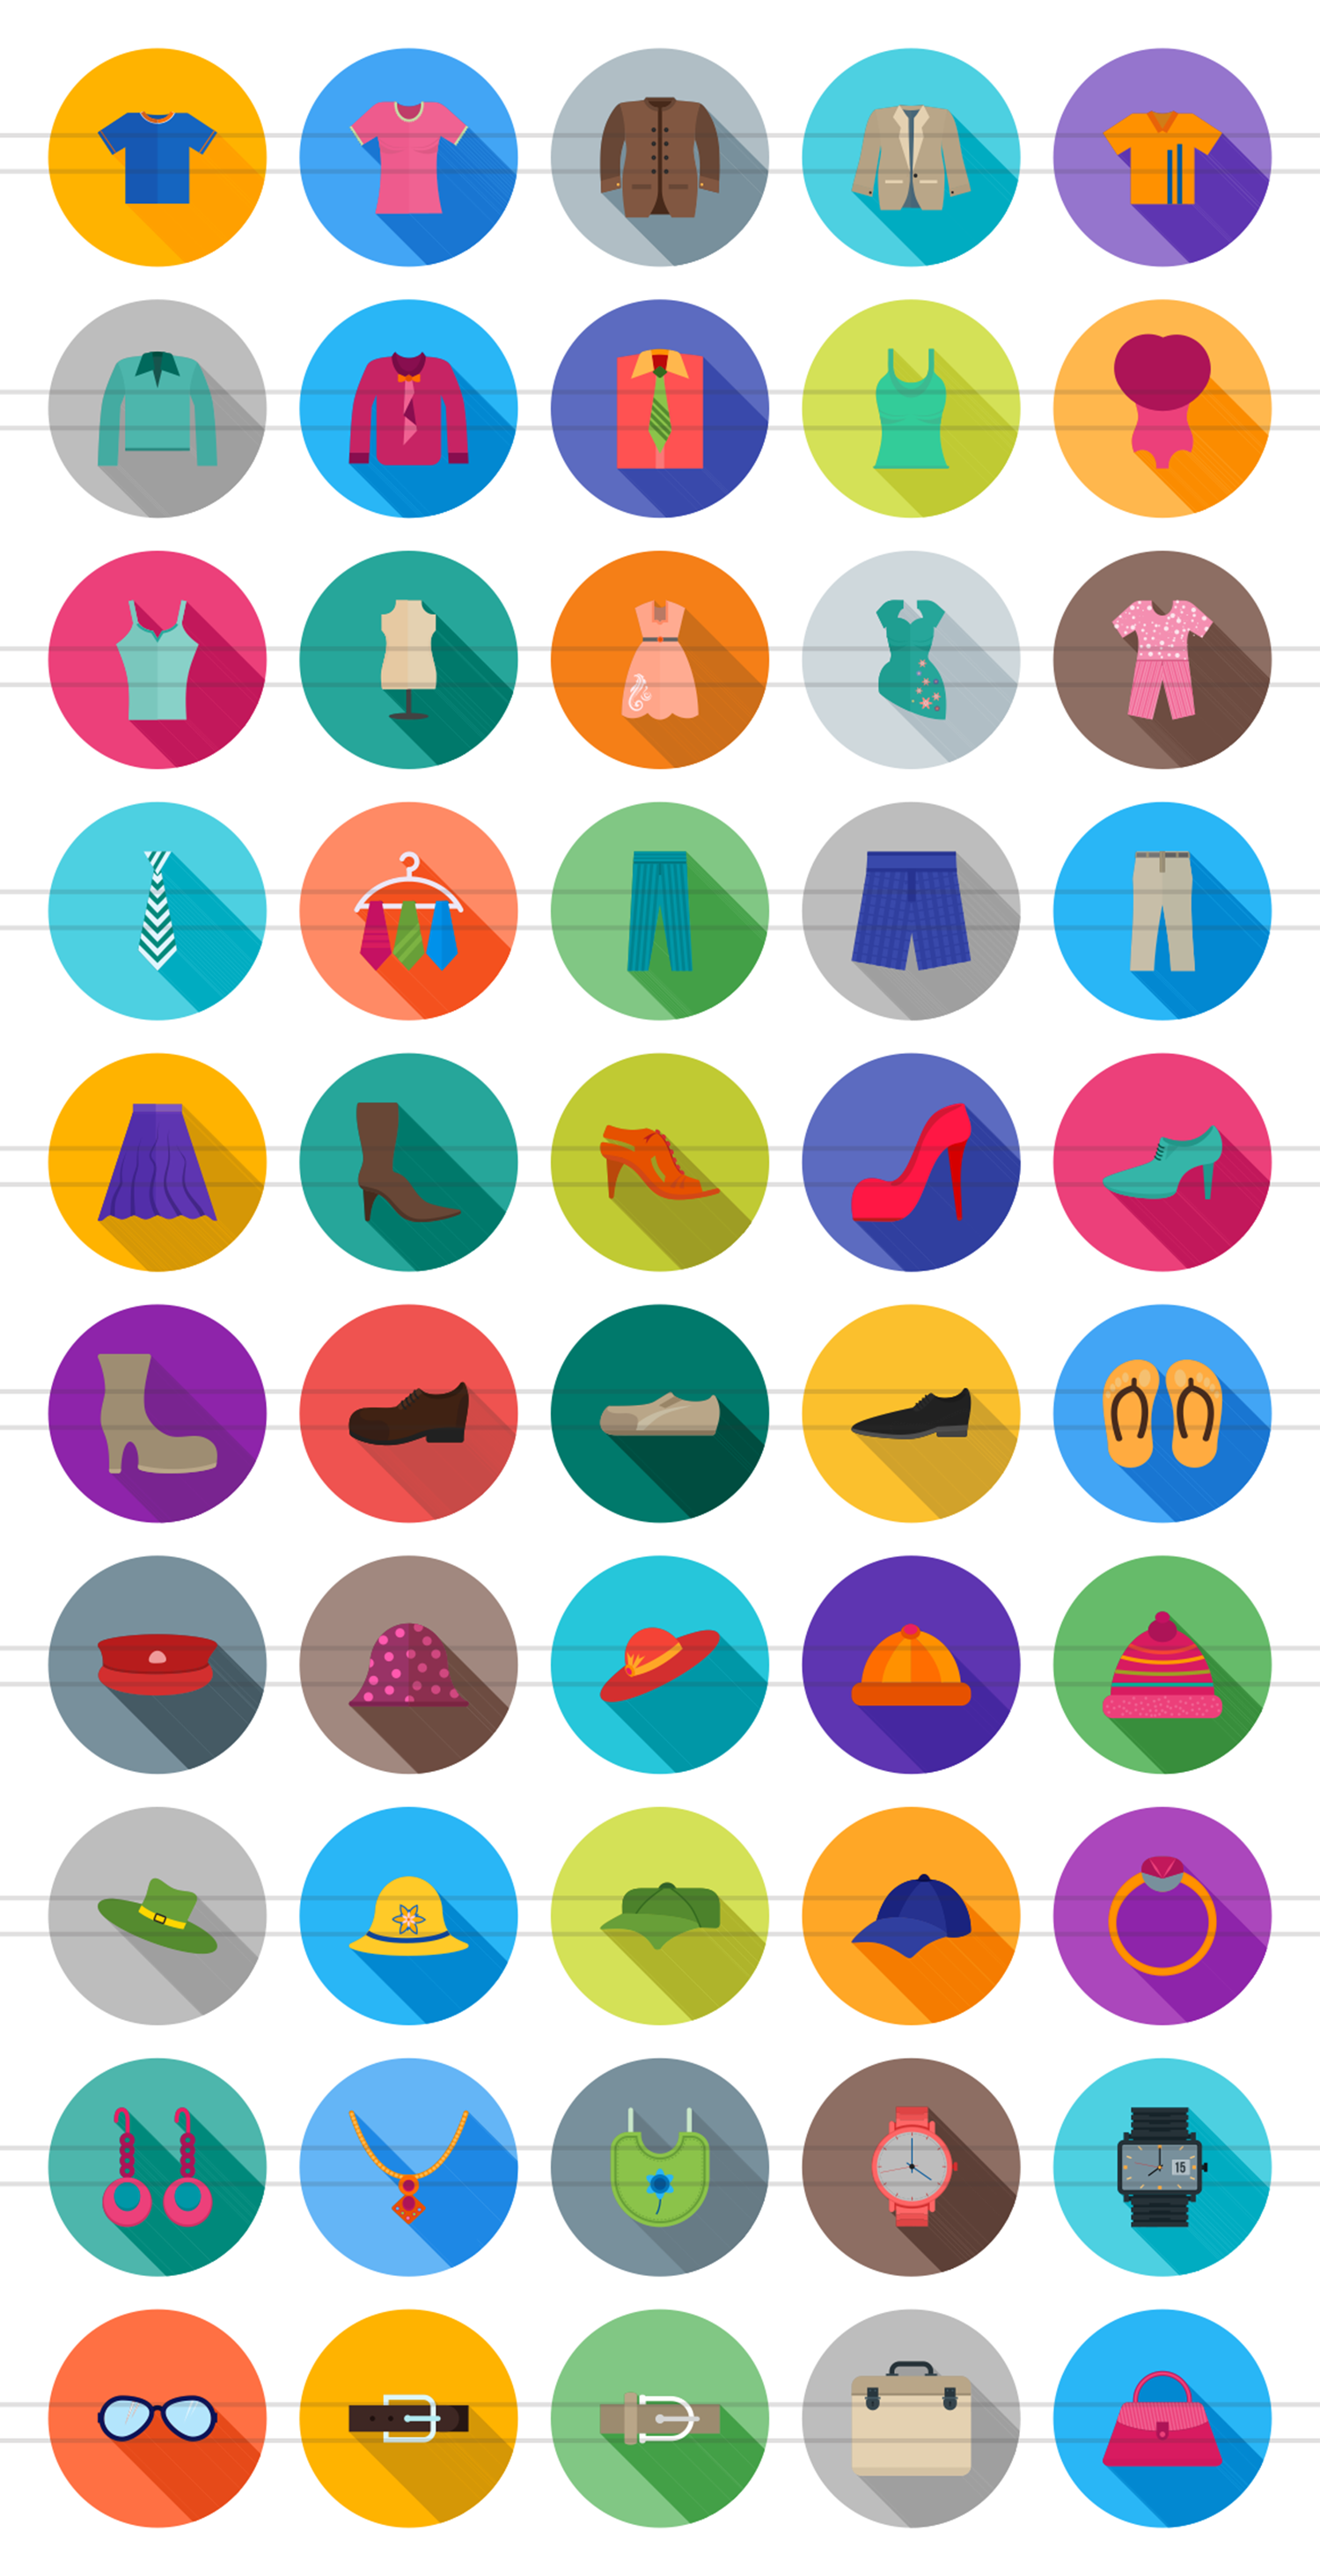 50 Clothes & Fashion Flat Long Shadow Icons example image 2